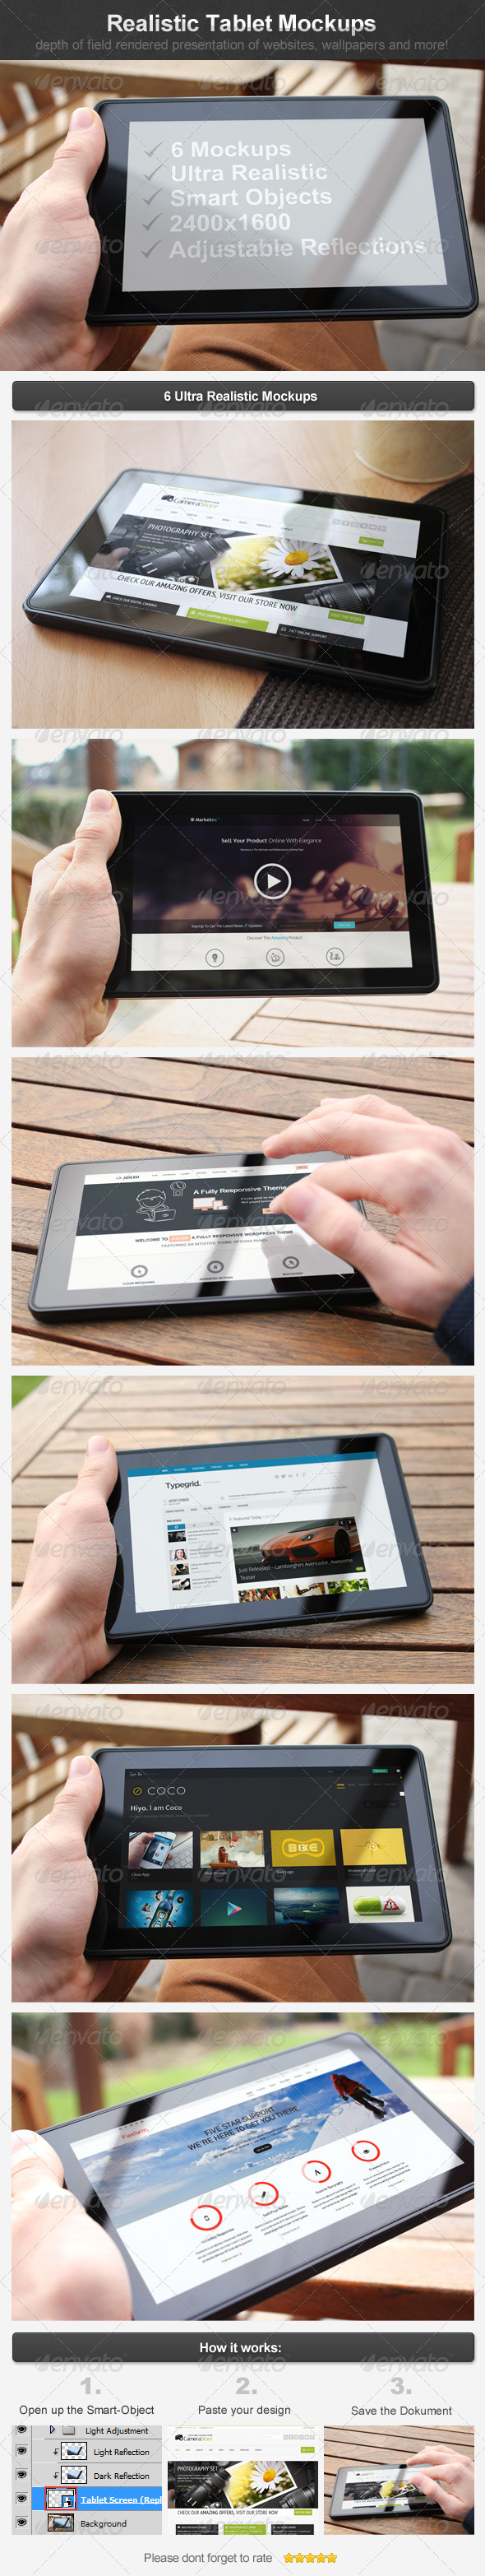 Realistic Tablet Mockups - Mobile Displays